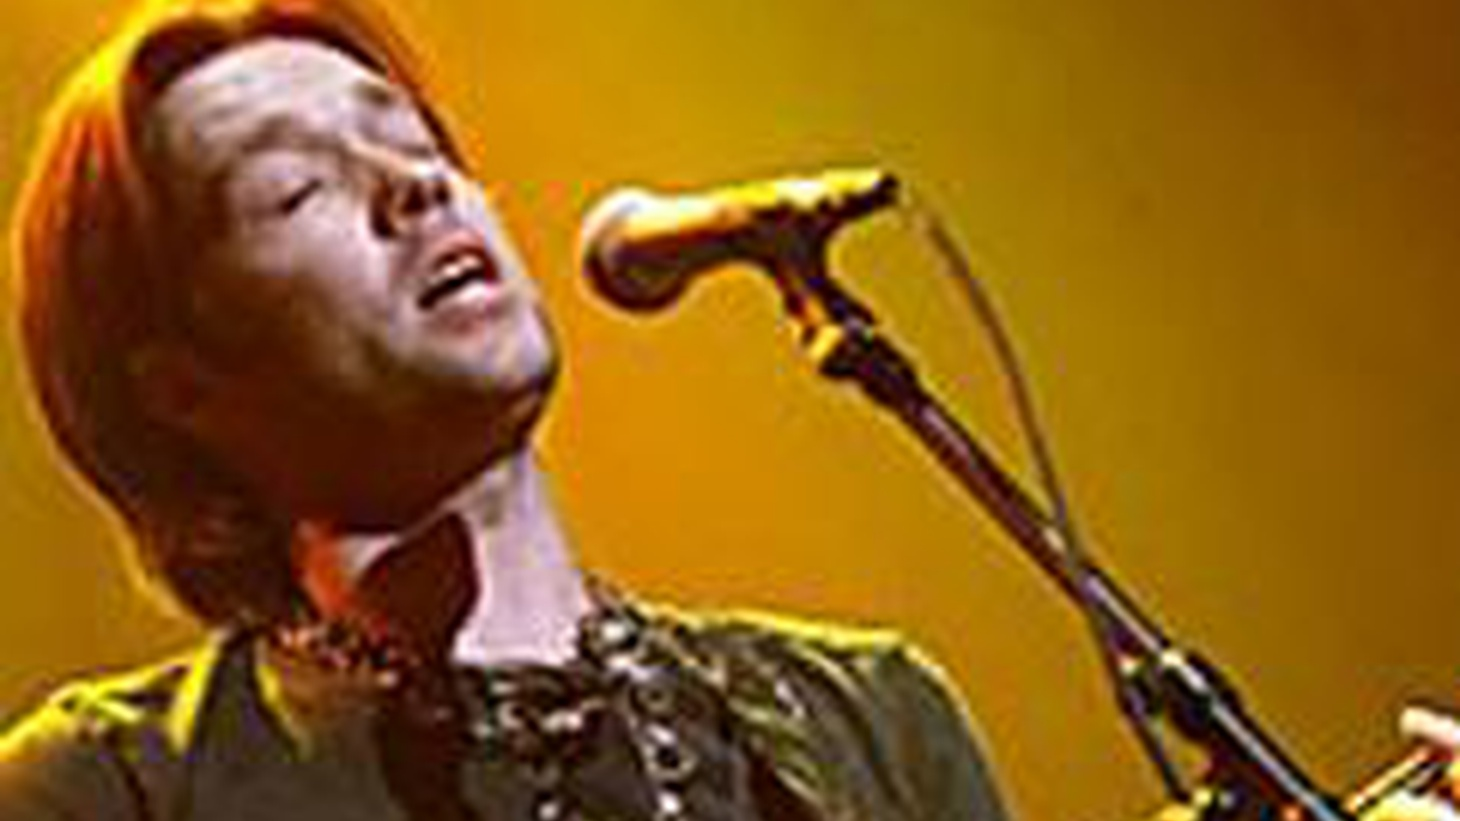 Singer, raconteur and pianist, Rufus Wainwright returns  this time with an 8 piece band to Morning  Becomes Eclectic at  11:15am.